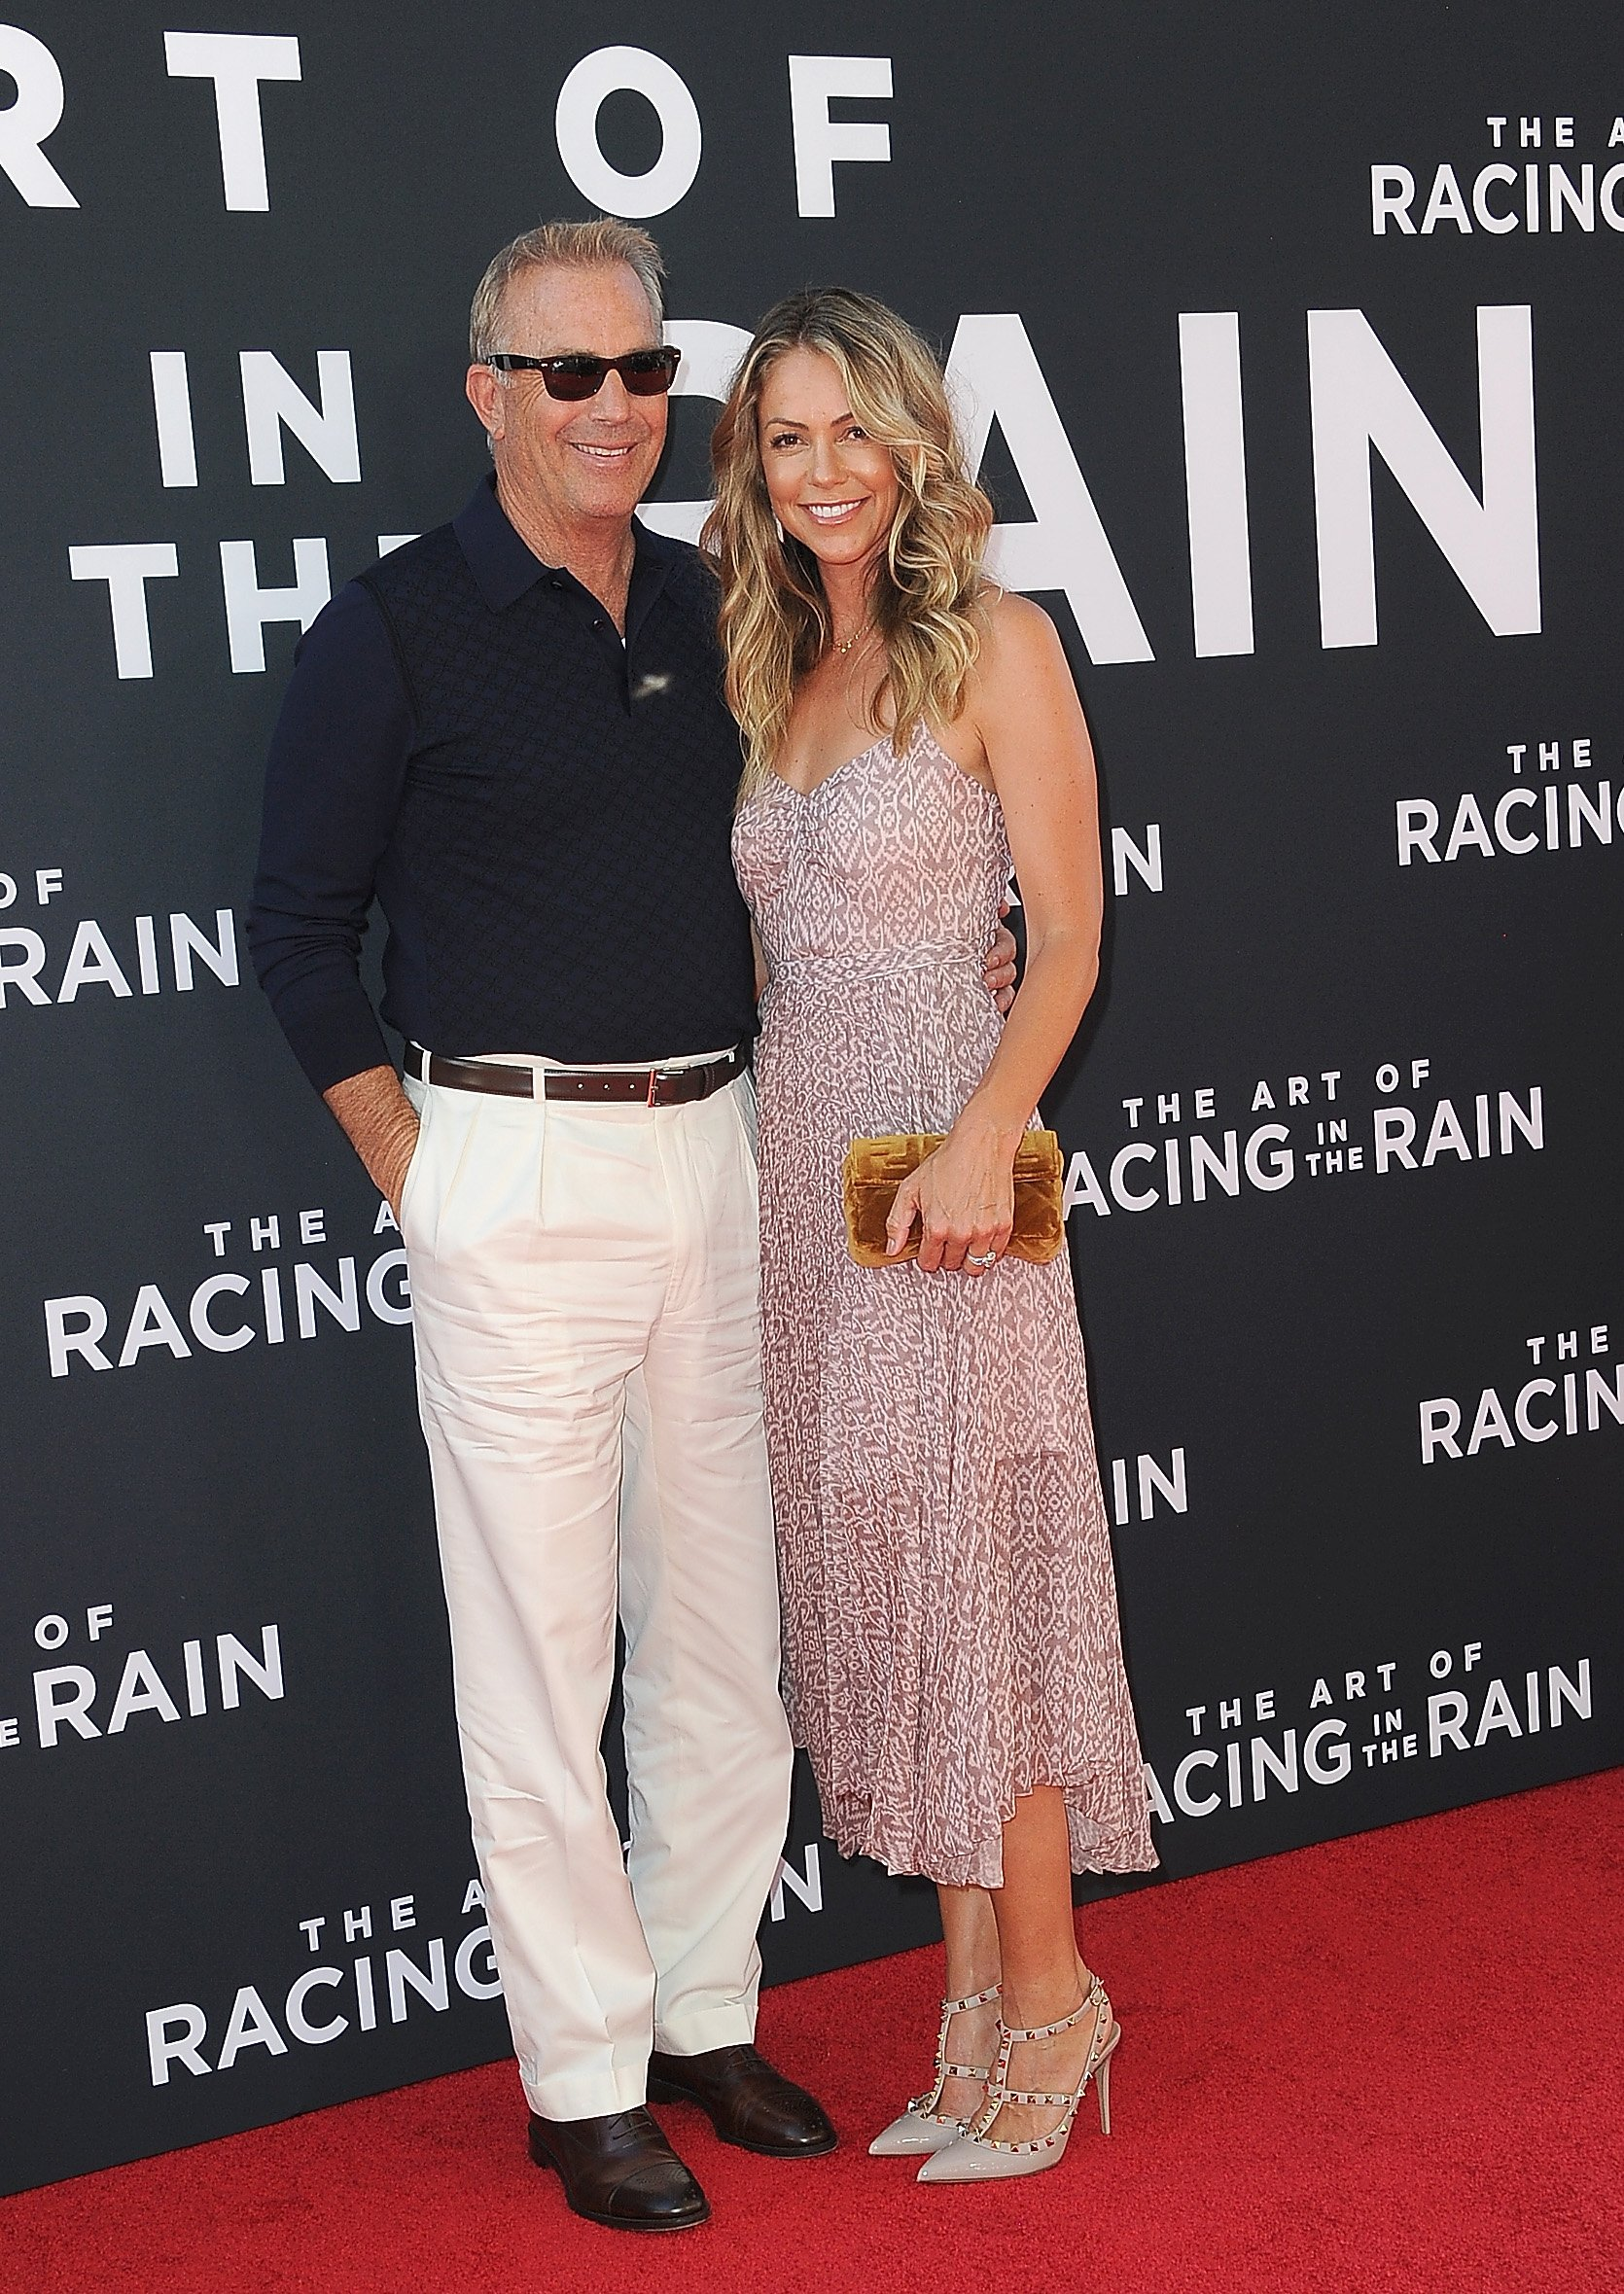 """Kevin Costner and Christine Baumgartner arrive for the Premiere of """"The Art Of Racing In The Rain""""  on August 1, 2019, in Los Angeles, California. 